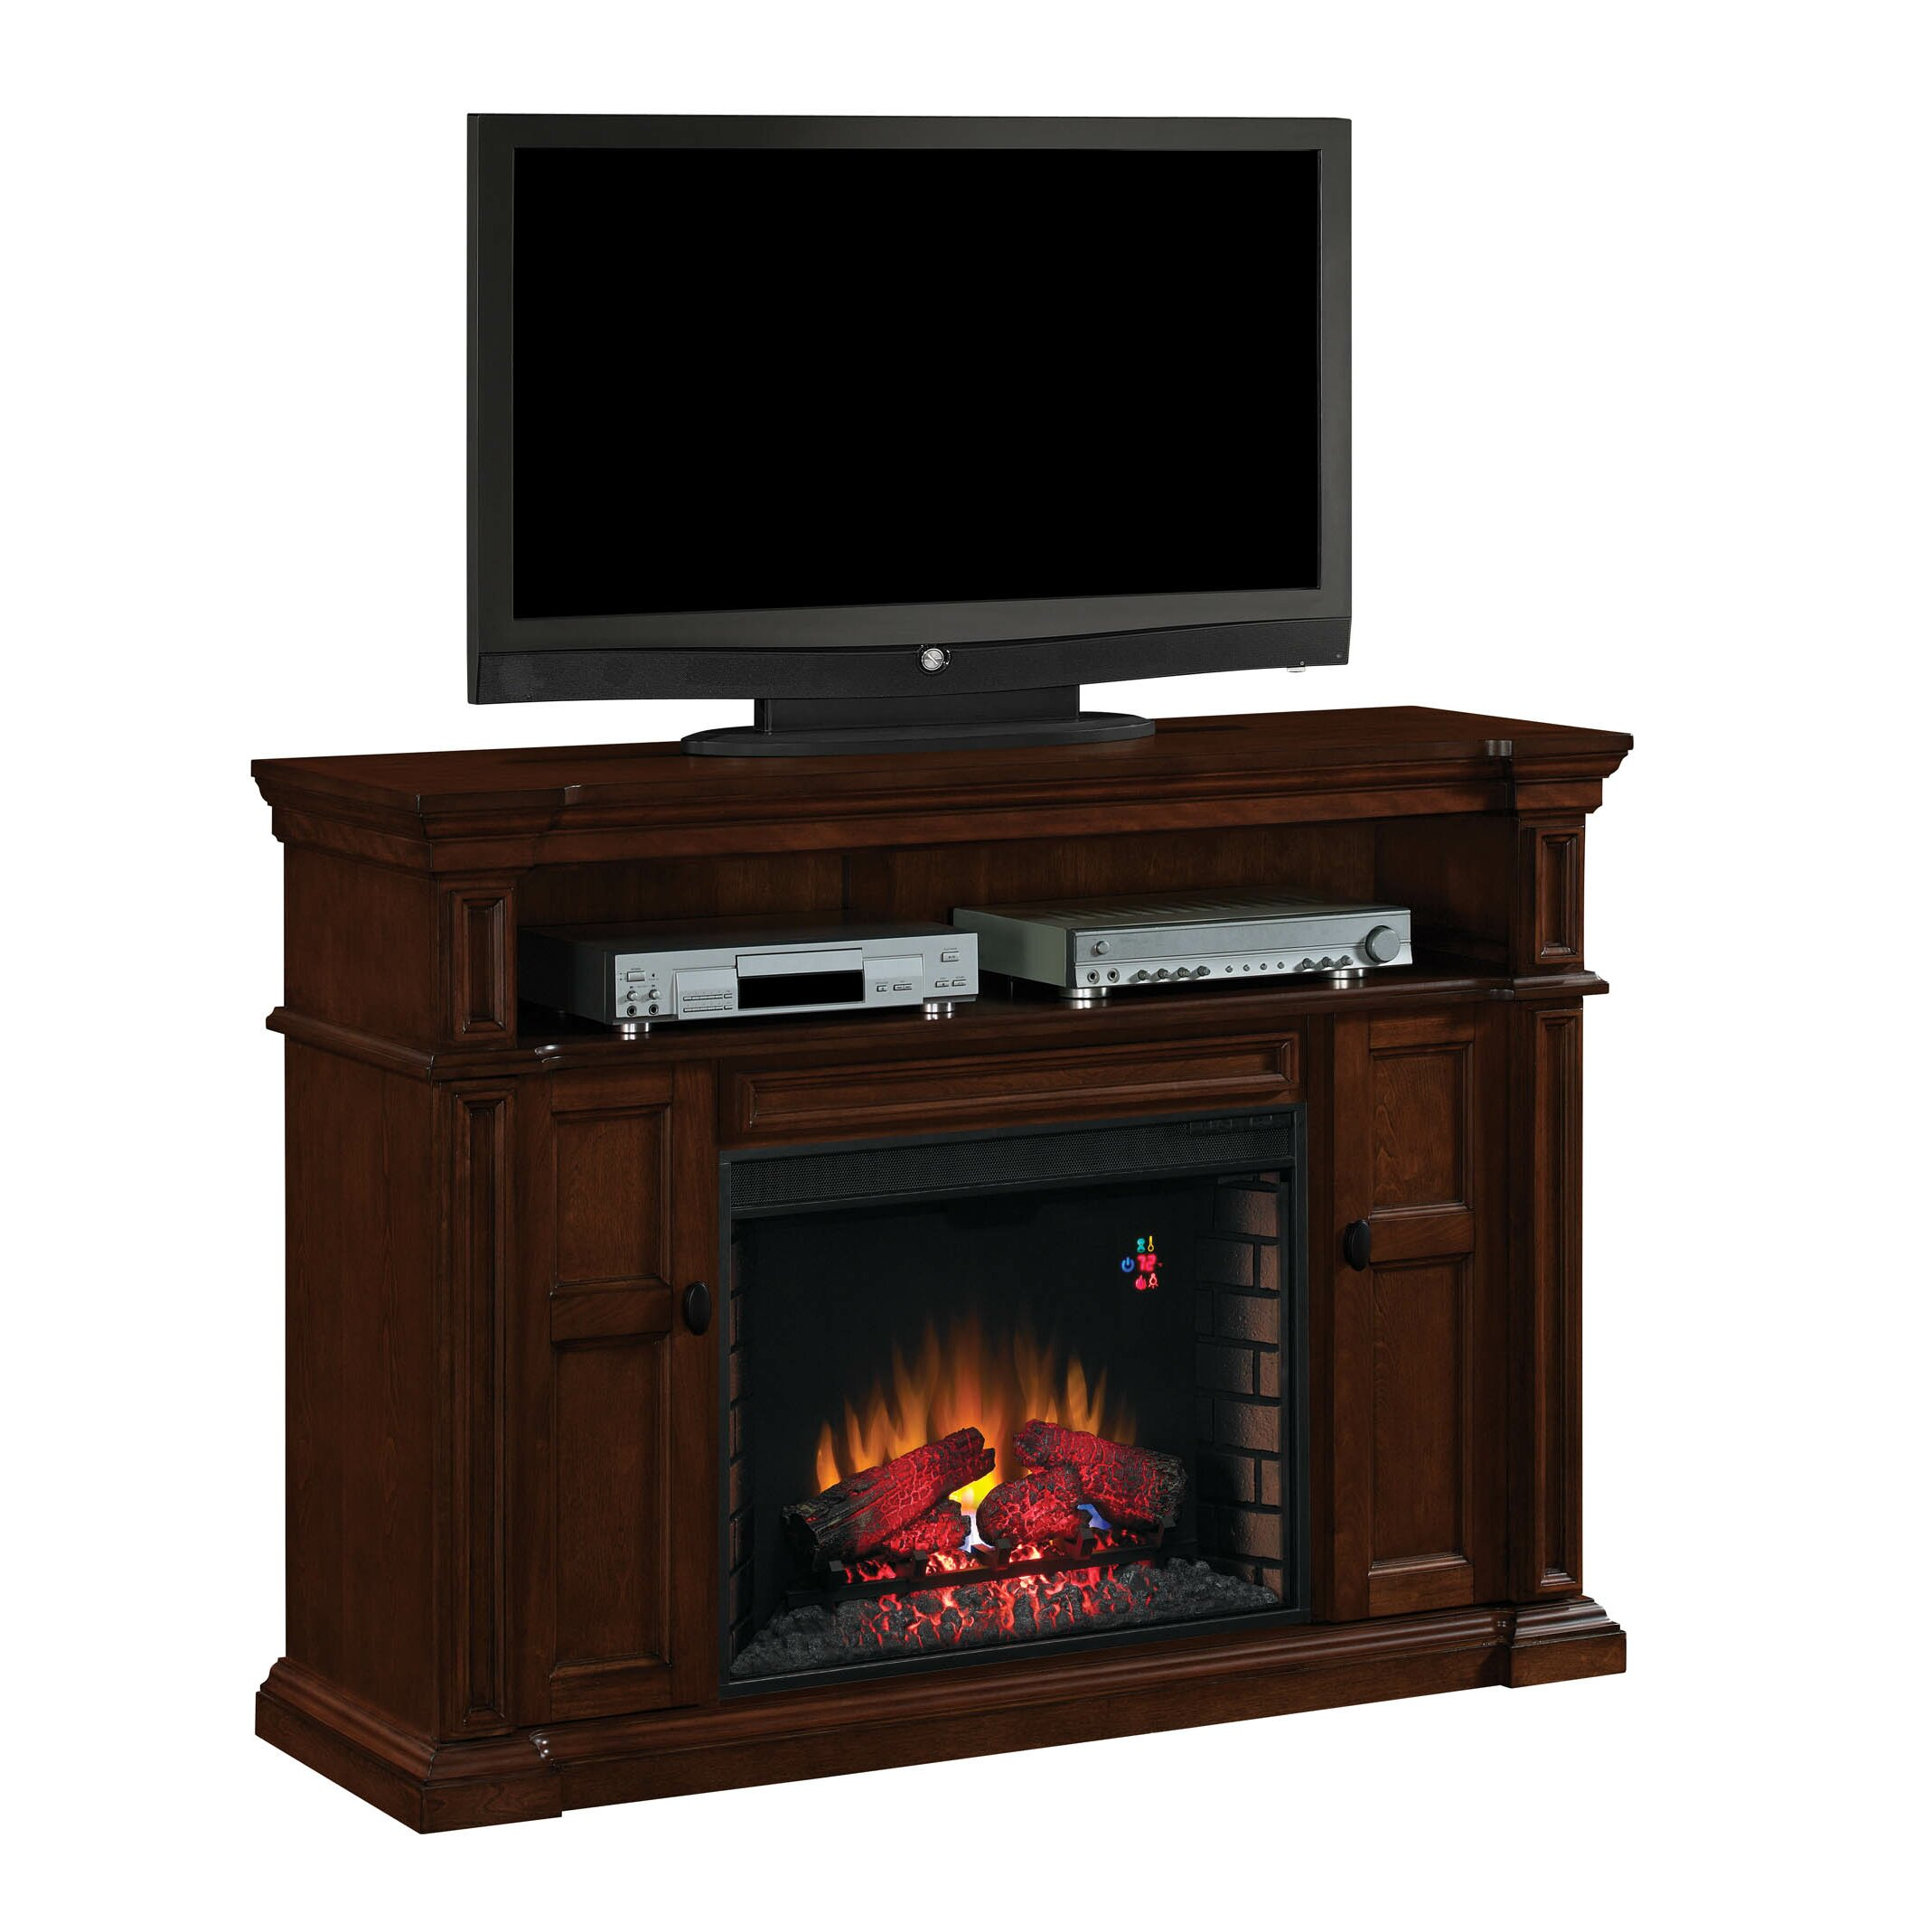 Classic Flame Wyatt Tv Stand With Infared Electric Fireplace Reviews Wayfair